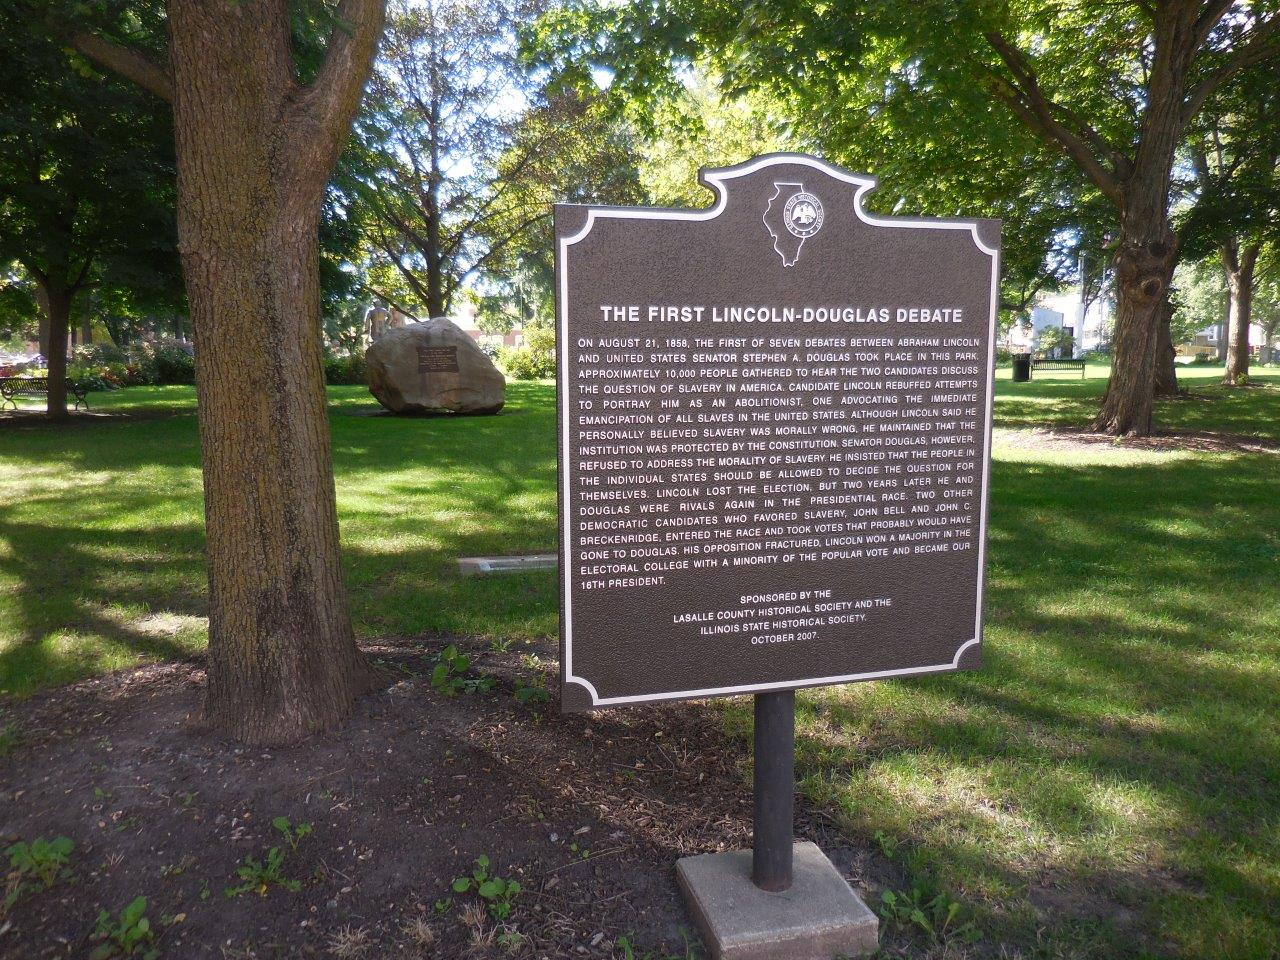 Historical marker at site of first Lincoln-Douglas debate